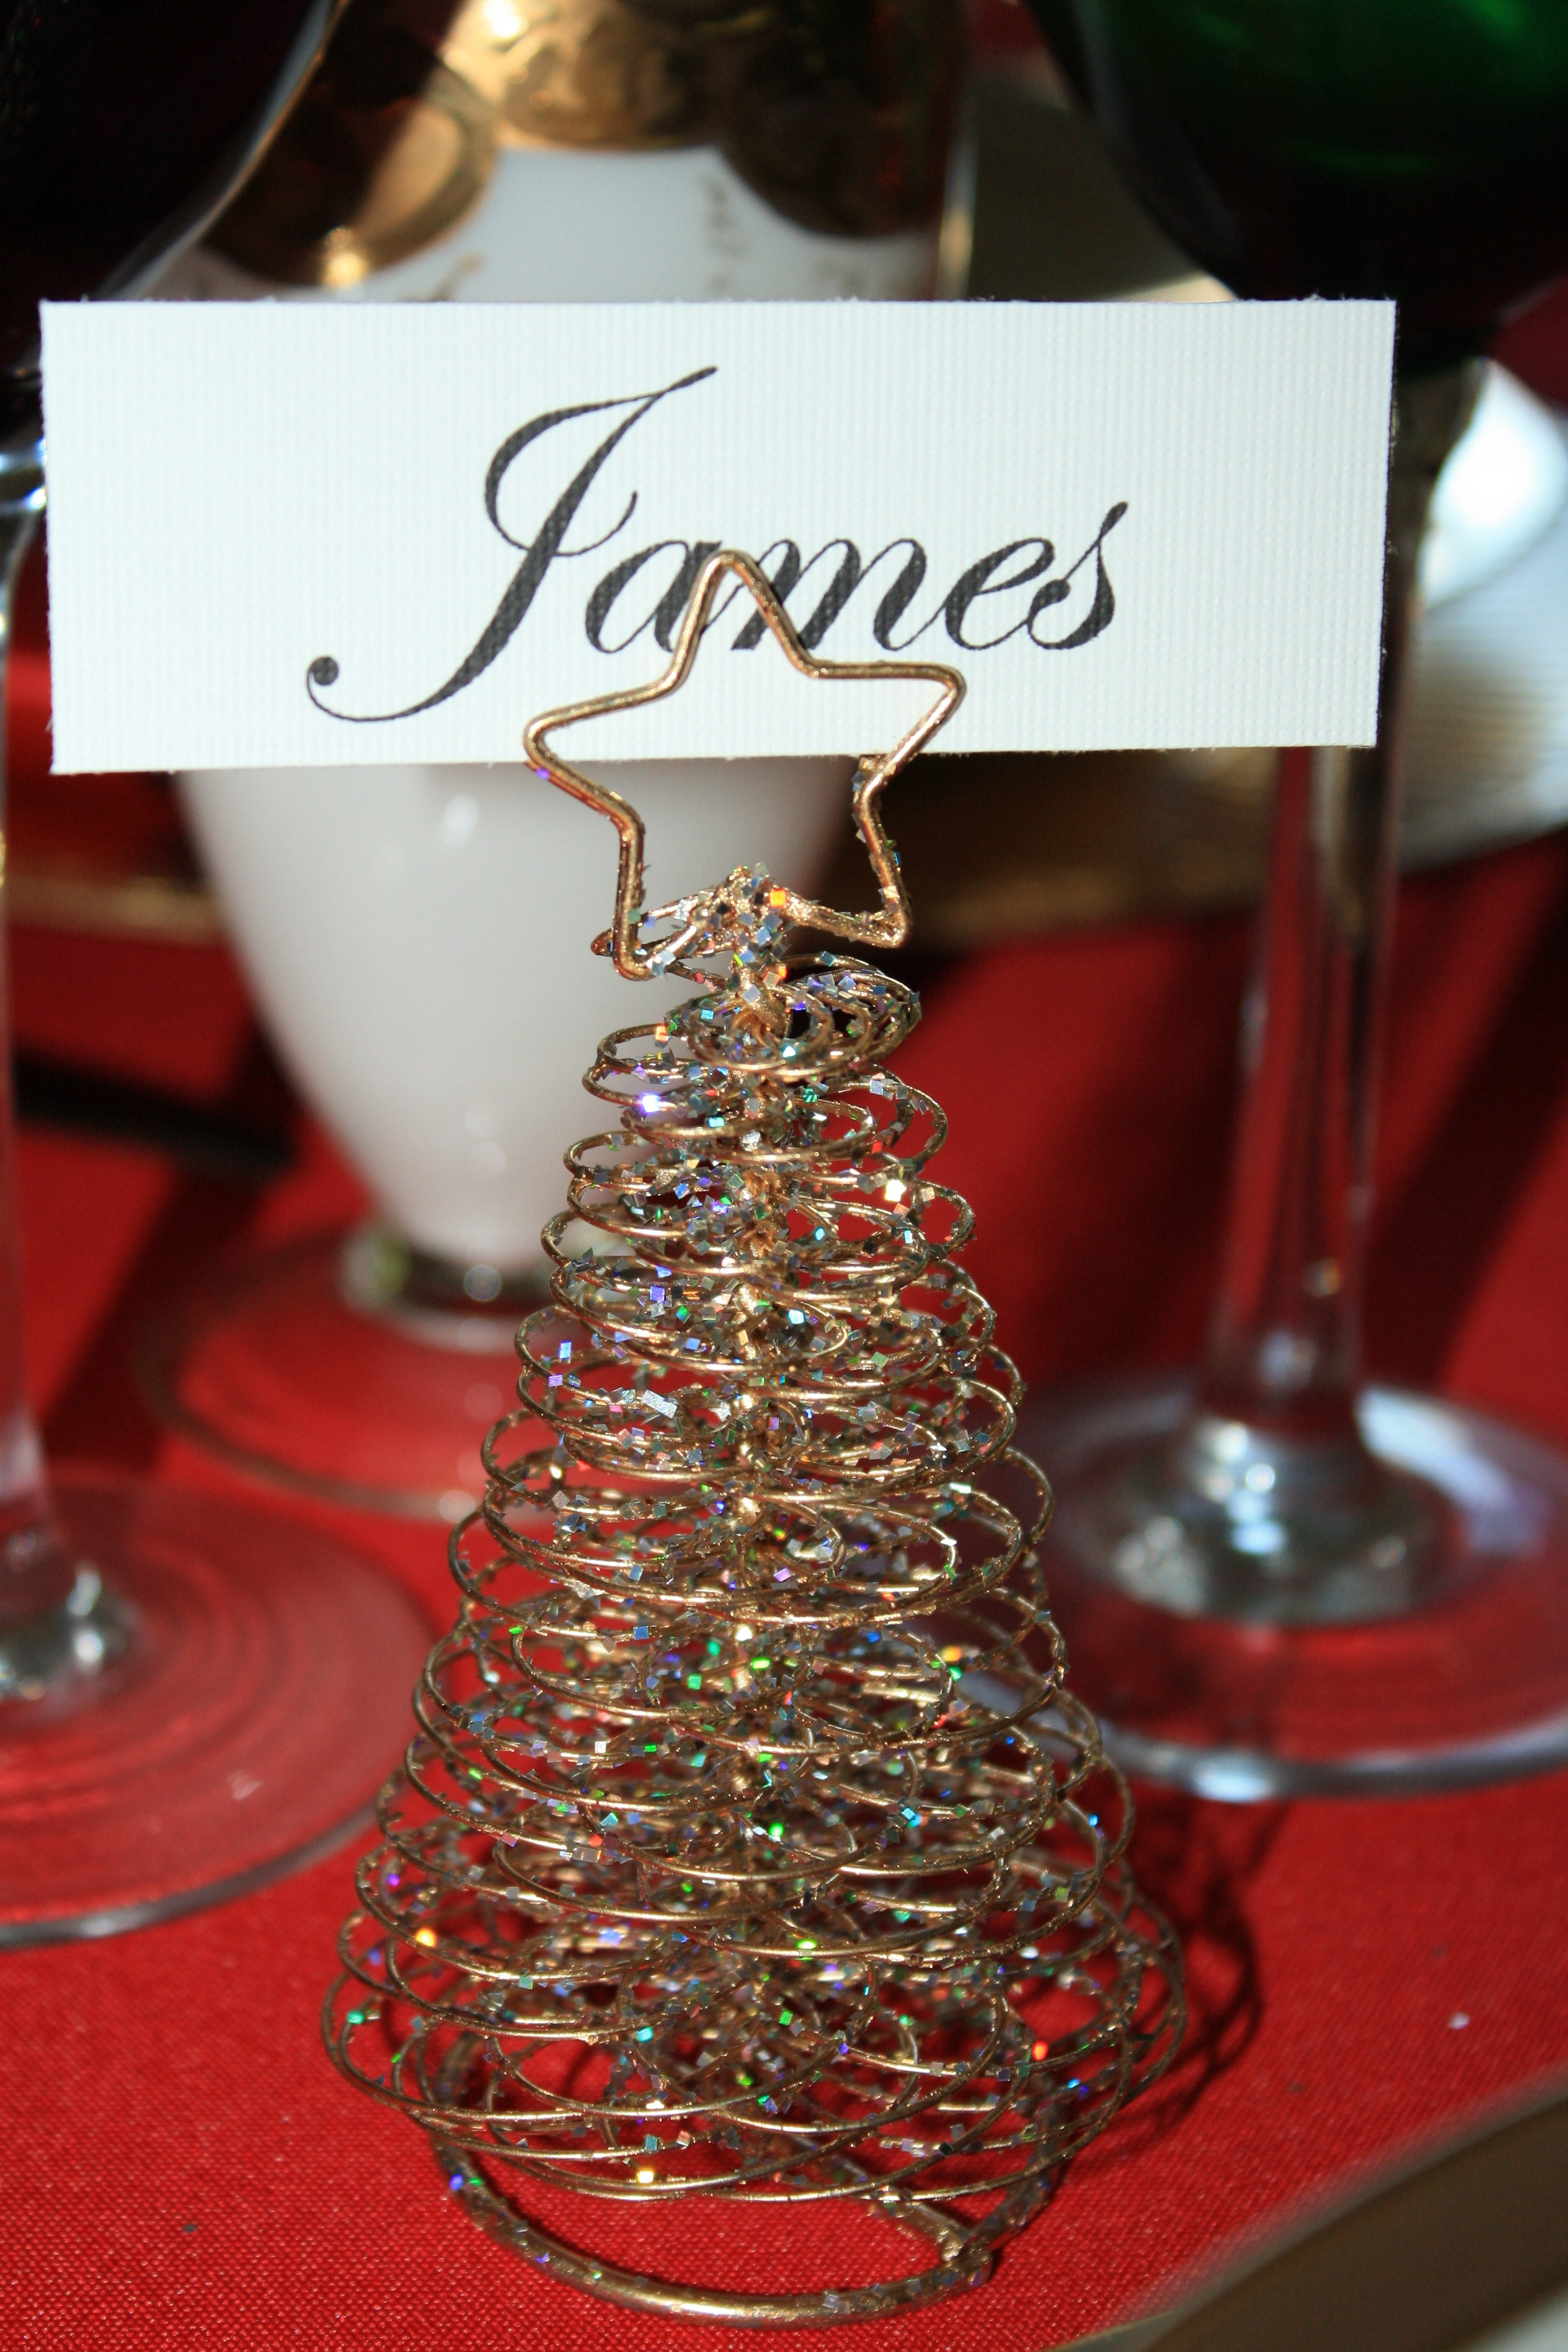 Tablescapes at Table Twenty-One, Merry & Bright Multi-Color Christmas: Gold metal place card holder